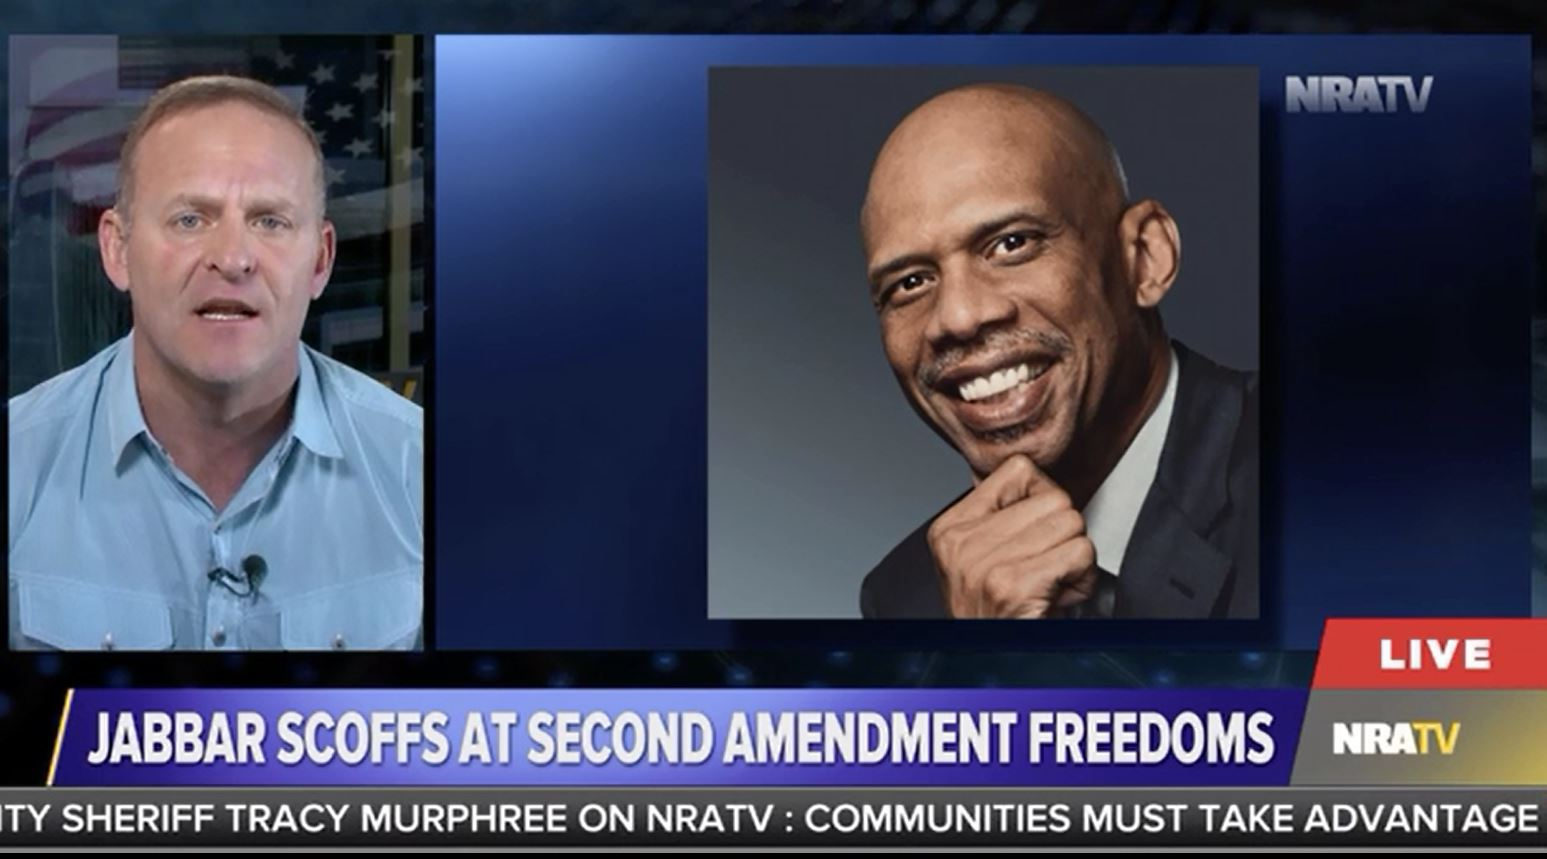 """NRATV host tells Kareem Abdul-Jabbar to """"stick to basketball"""" after he wrote a column about athletes and gun violence"""